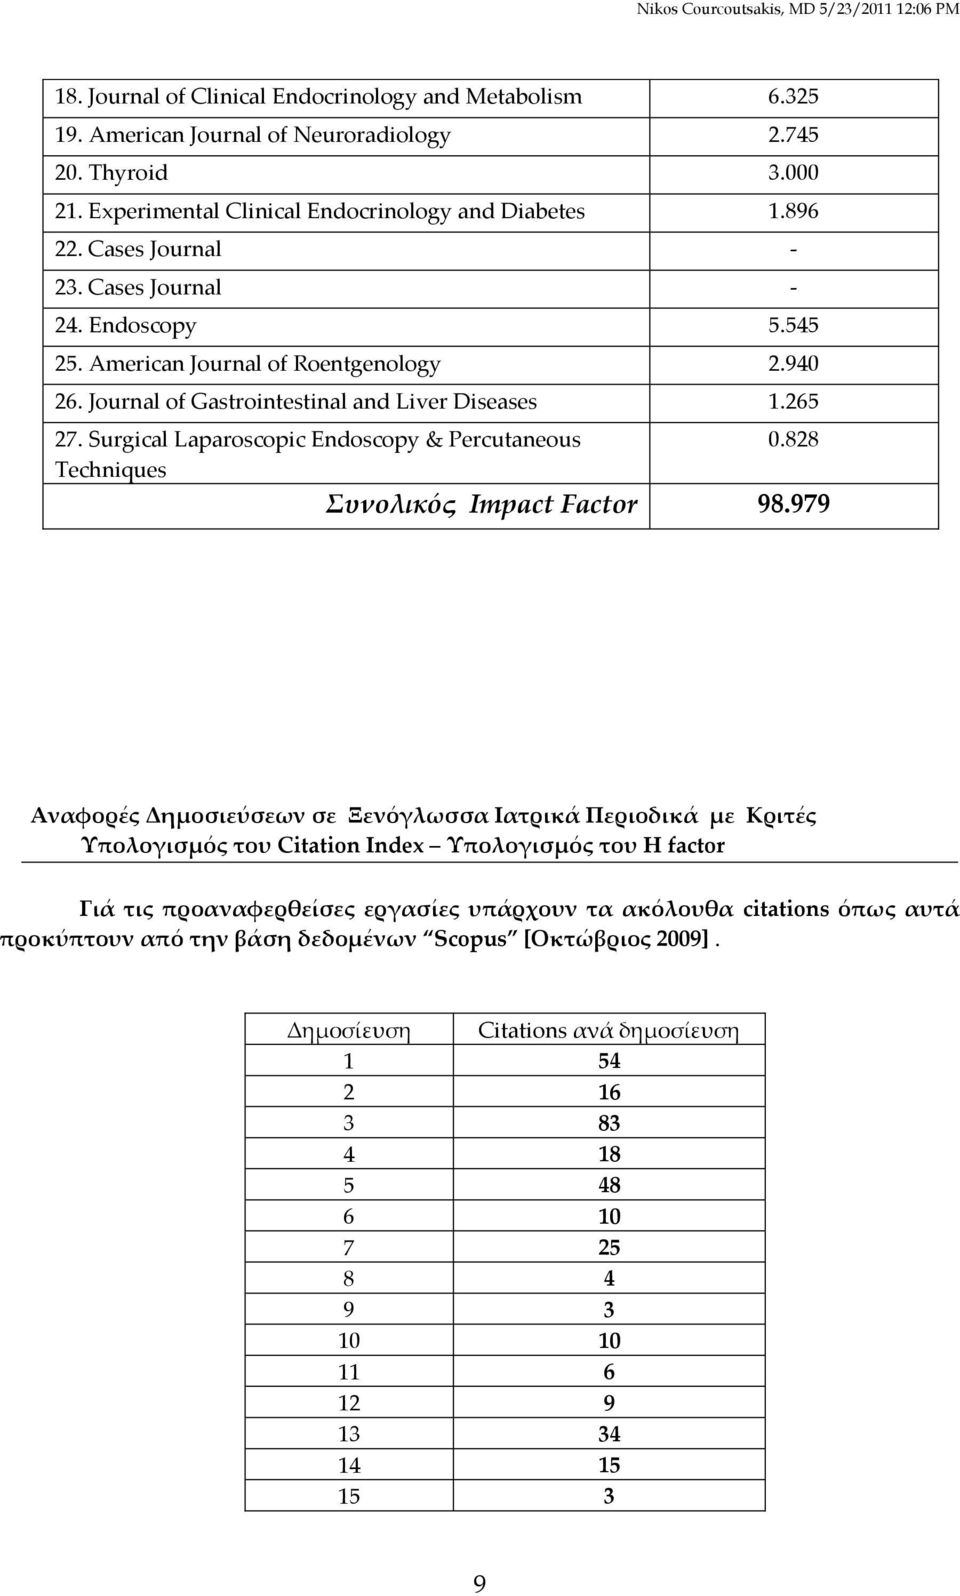 Surgical Laparoscopic Endoscopy & Percutaneous Techniques 0.828 Συνολικός Impact Factor 98.